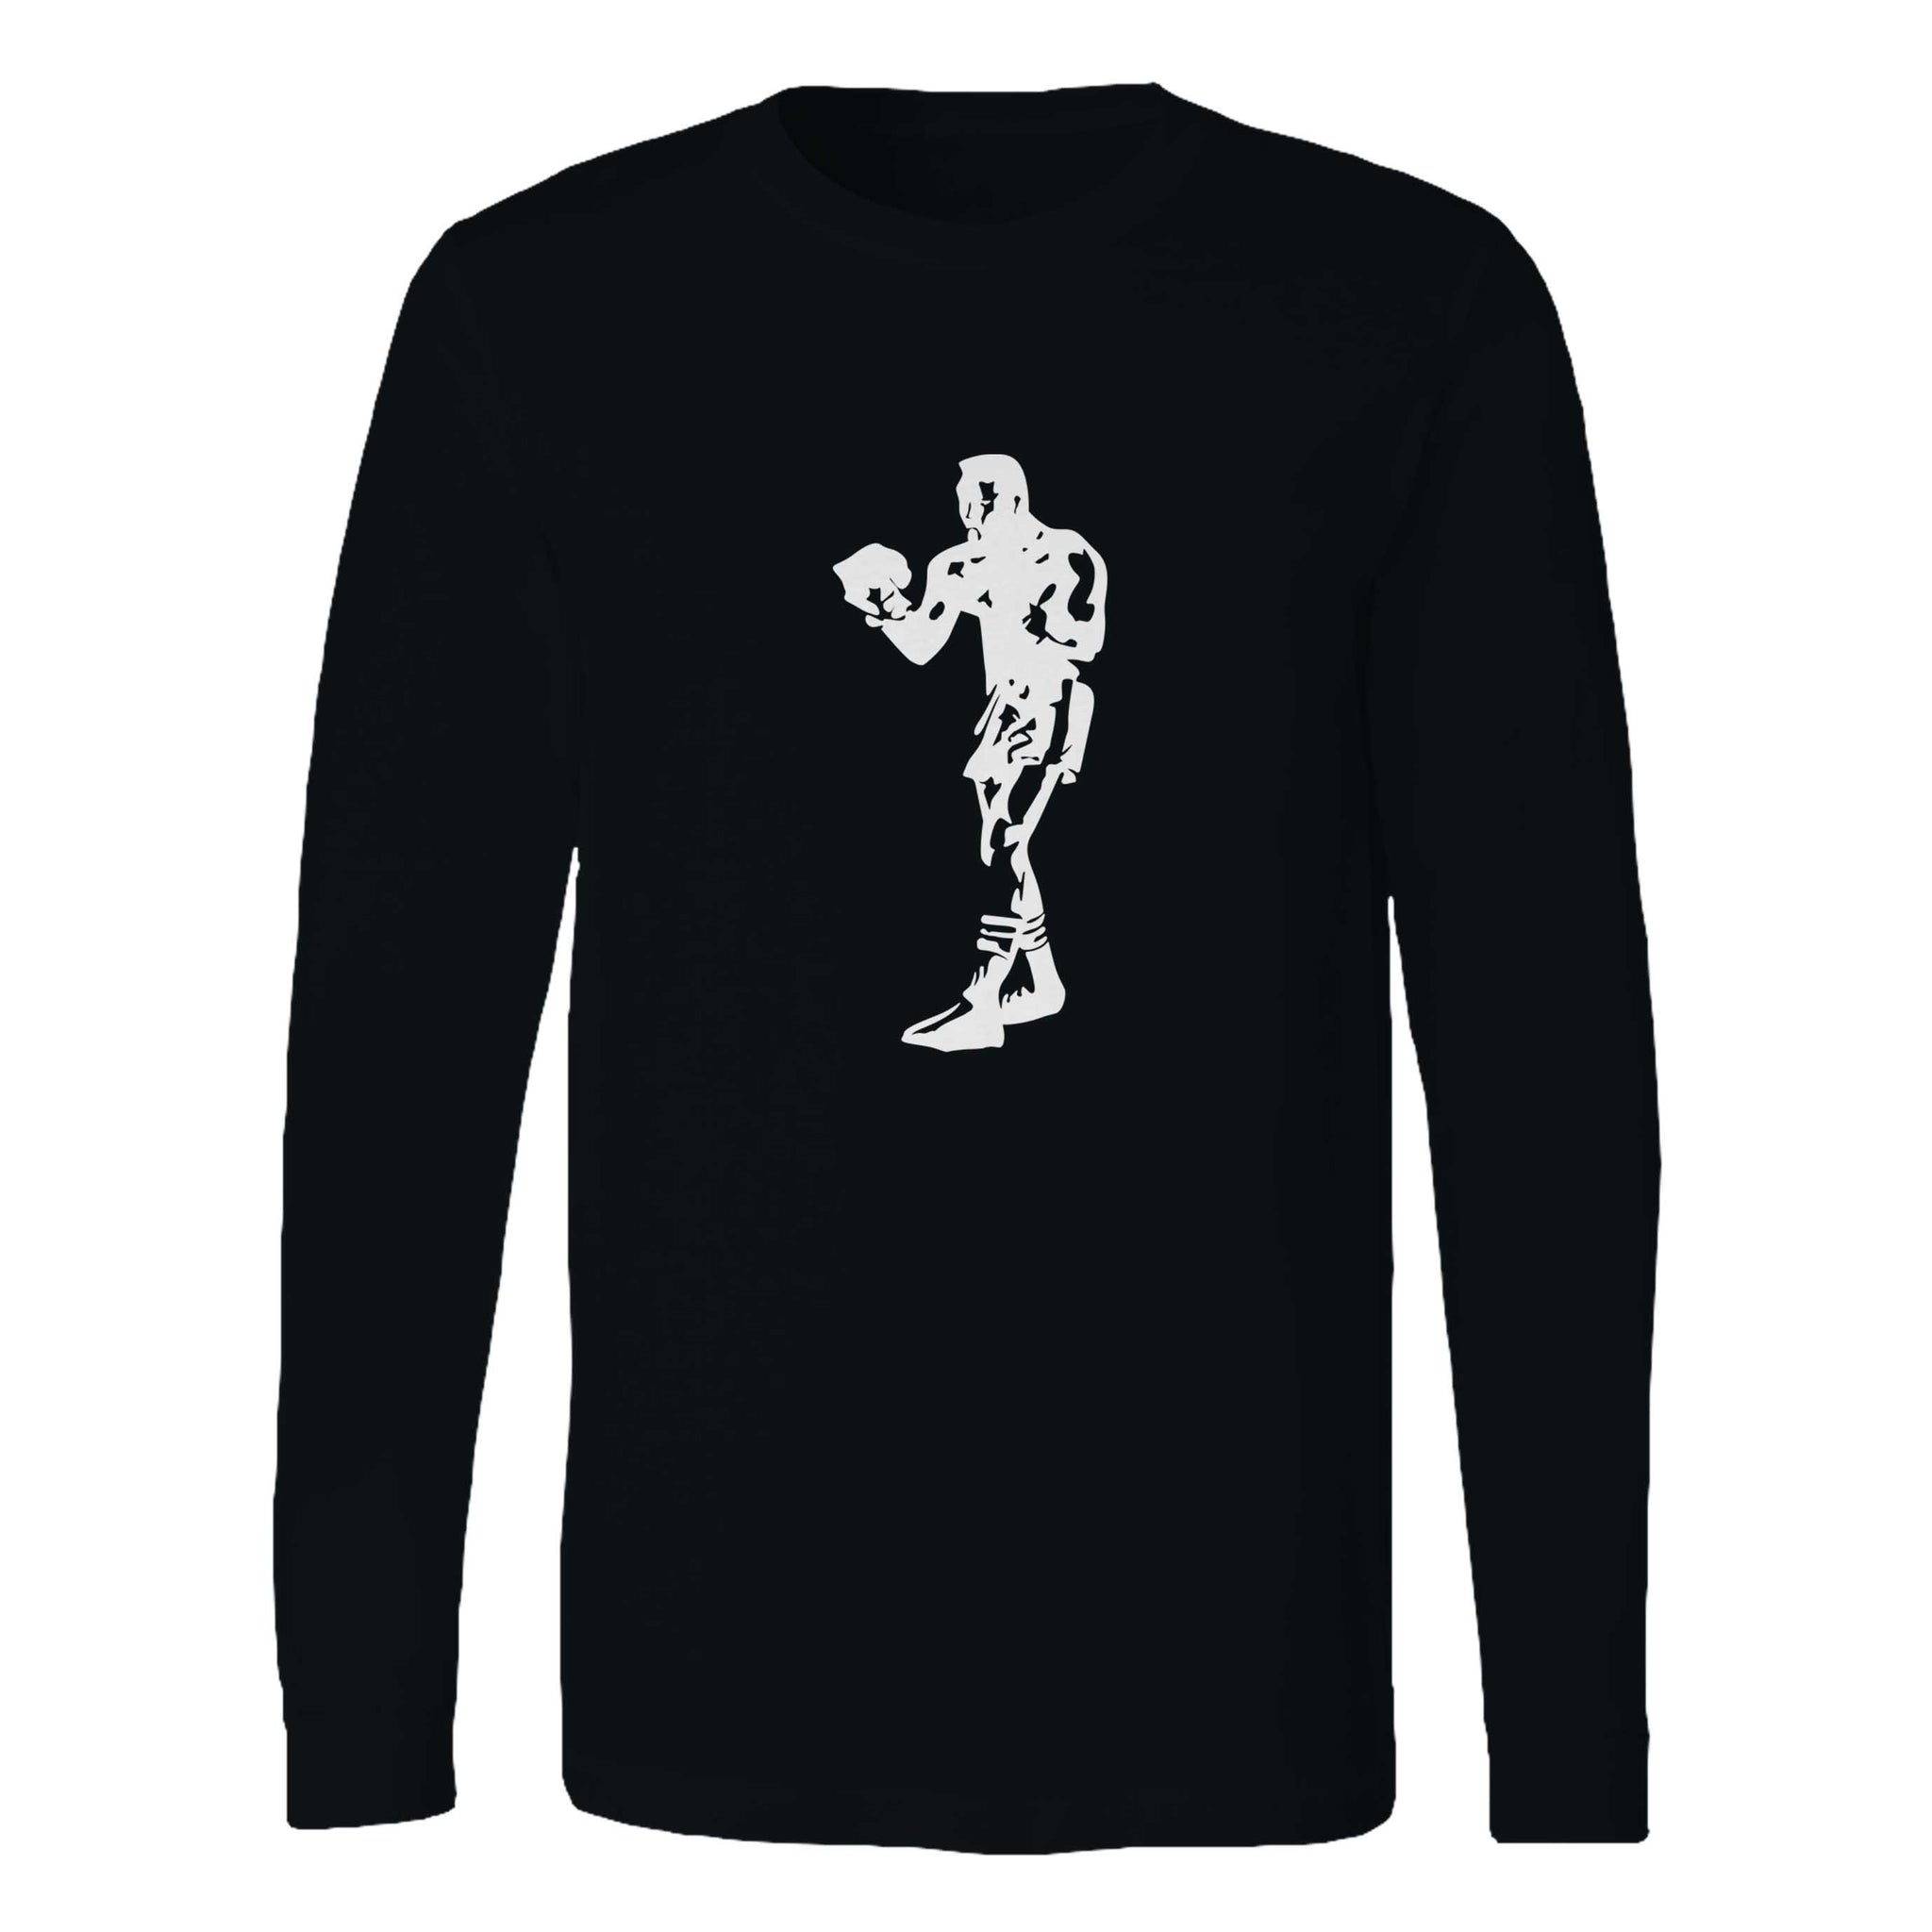 The Boxer Muhammad Ali Boxing Long Sleeve T-Shirt